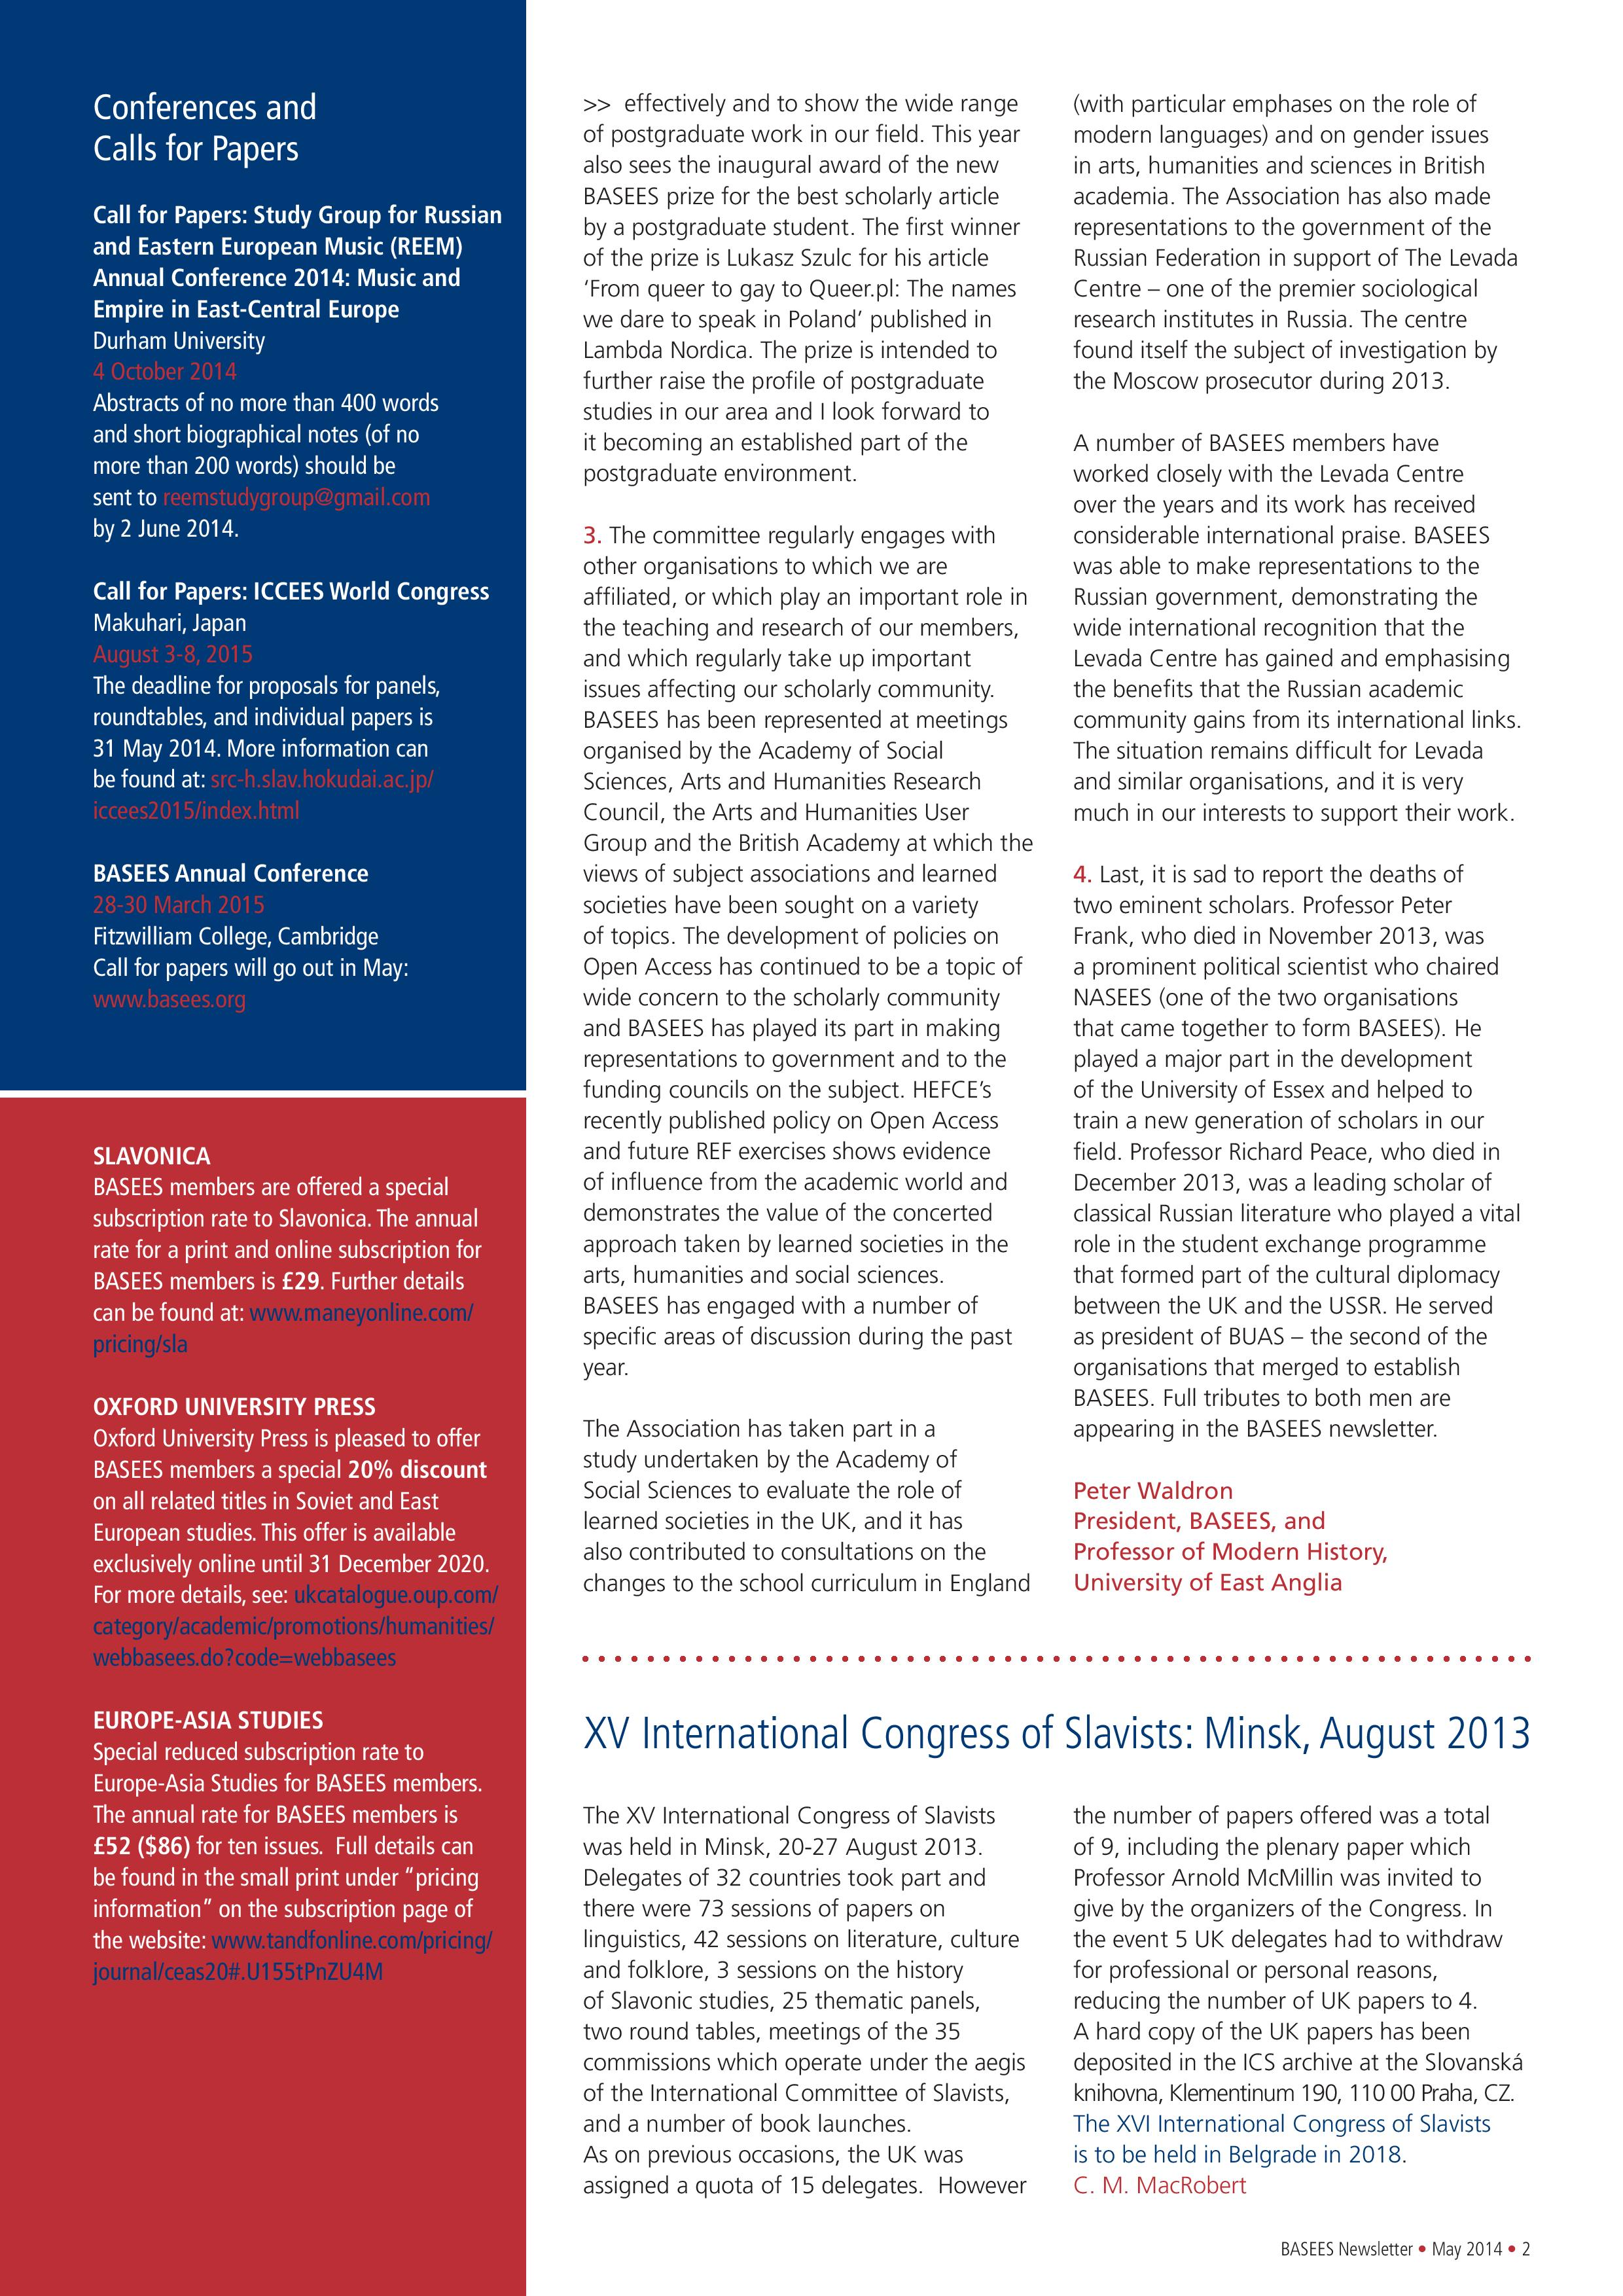 BASEES NewsletterMay 2014-page-002.jpg